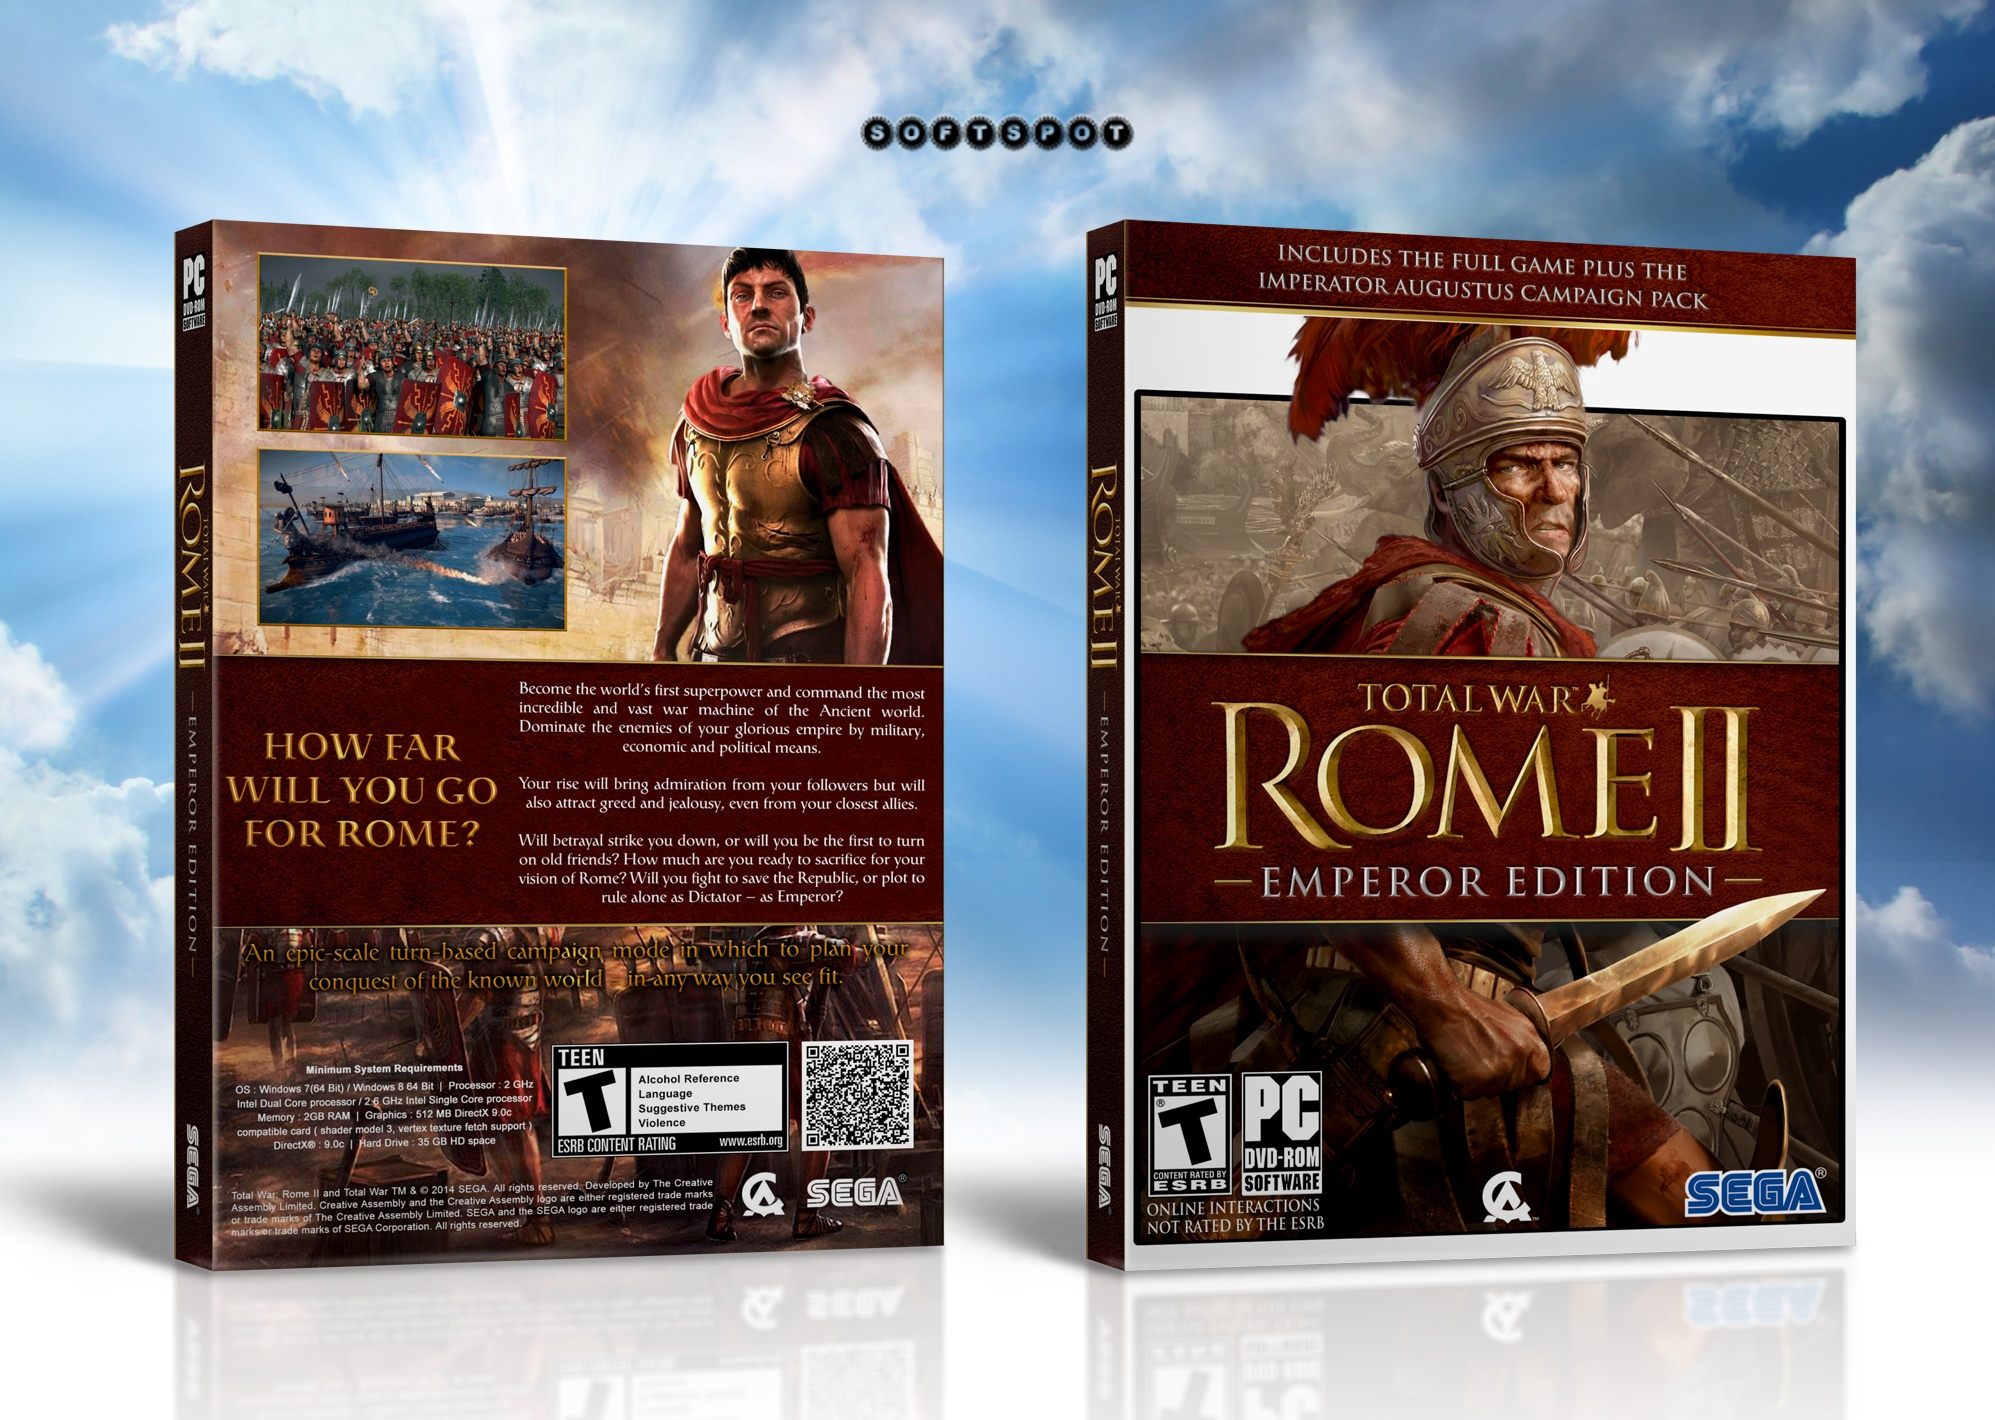 Total War Rome II : Emperor Edition box cover